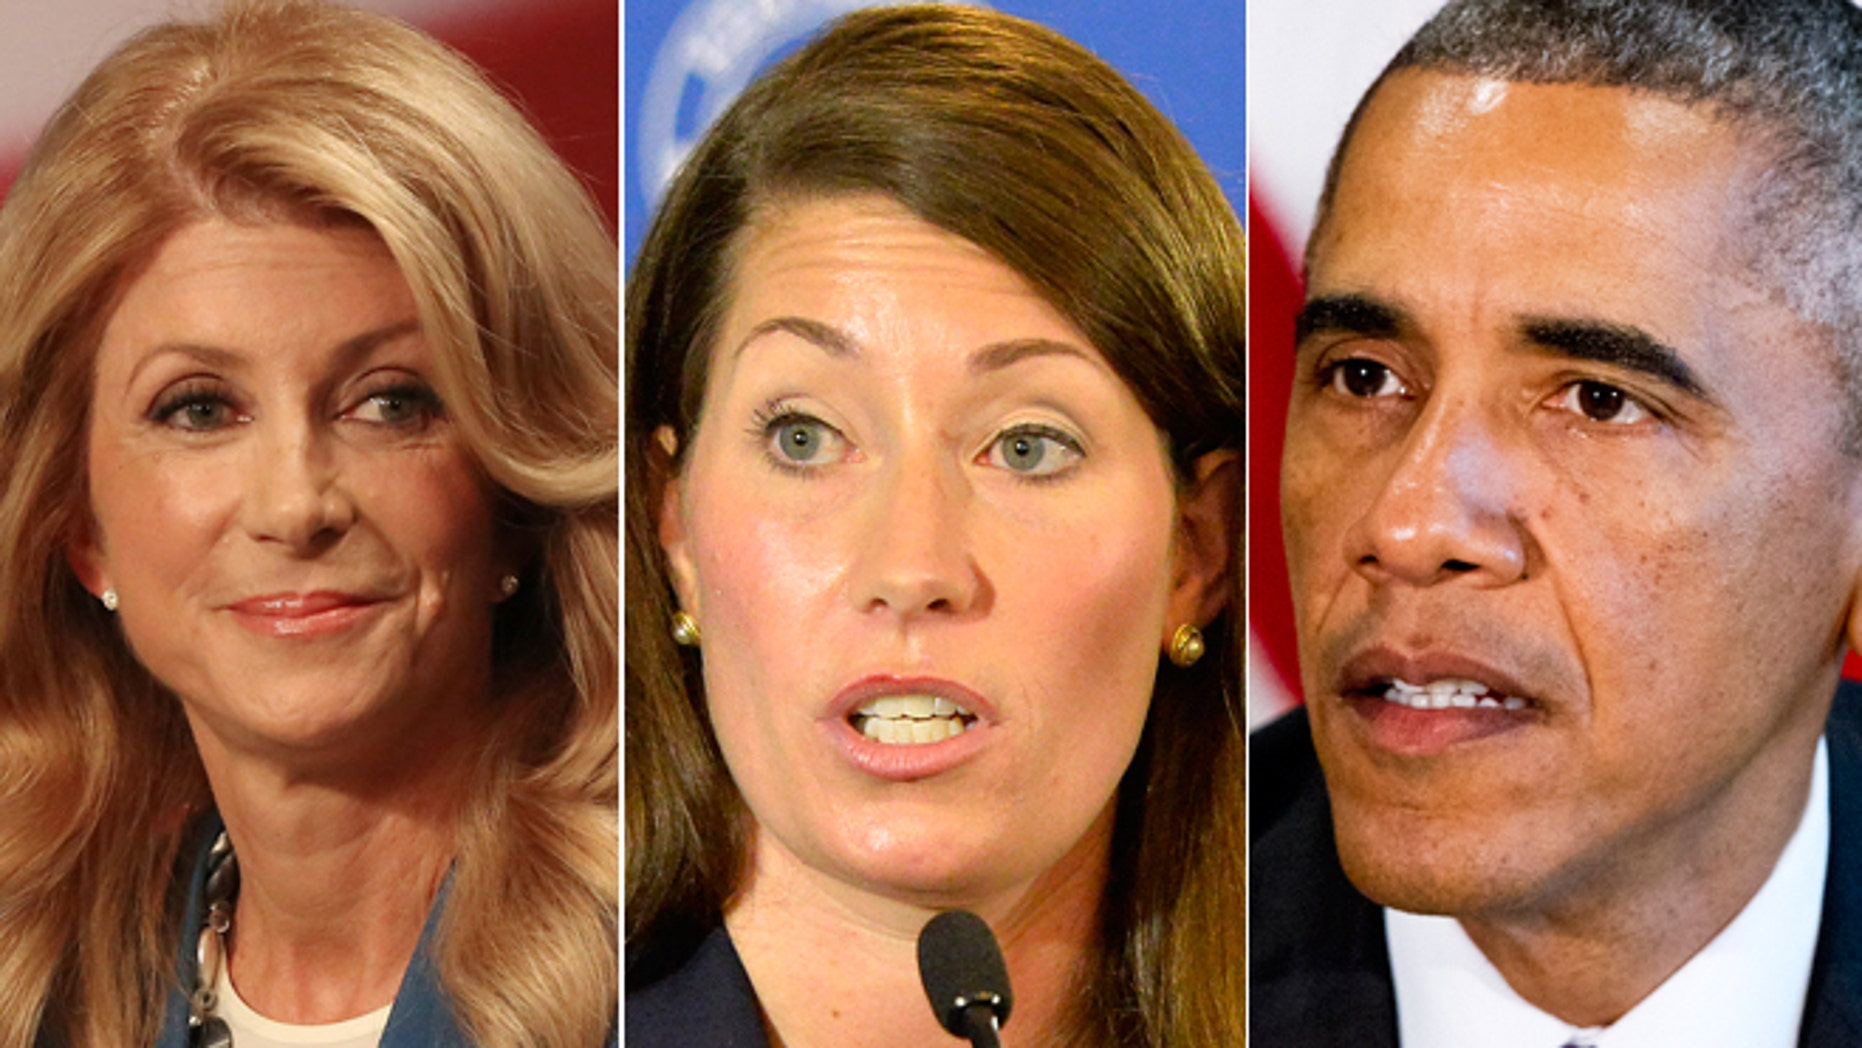 Democratic Gubernatorial candidate,Texas State Senator Wendy Davis on Tuesday Sept. 30, 2014 in Dallas, Texas. Kentucky Democratic Senate candidate Alison Lundergan Grimes in Louisville, Ky on Aug. 20, 2014 and President Barack Obama at the Pentagon on Wednesday, Oct. 8, 2014.